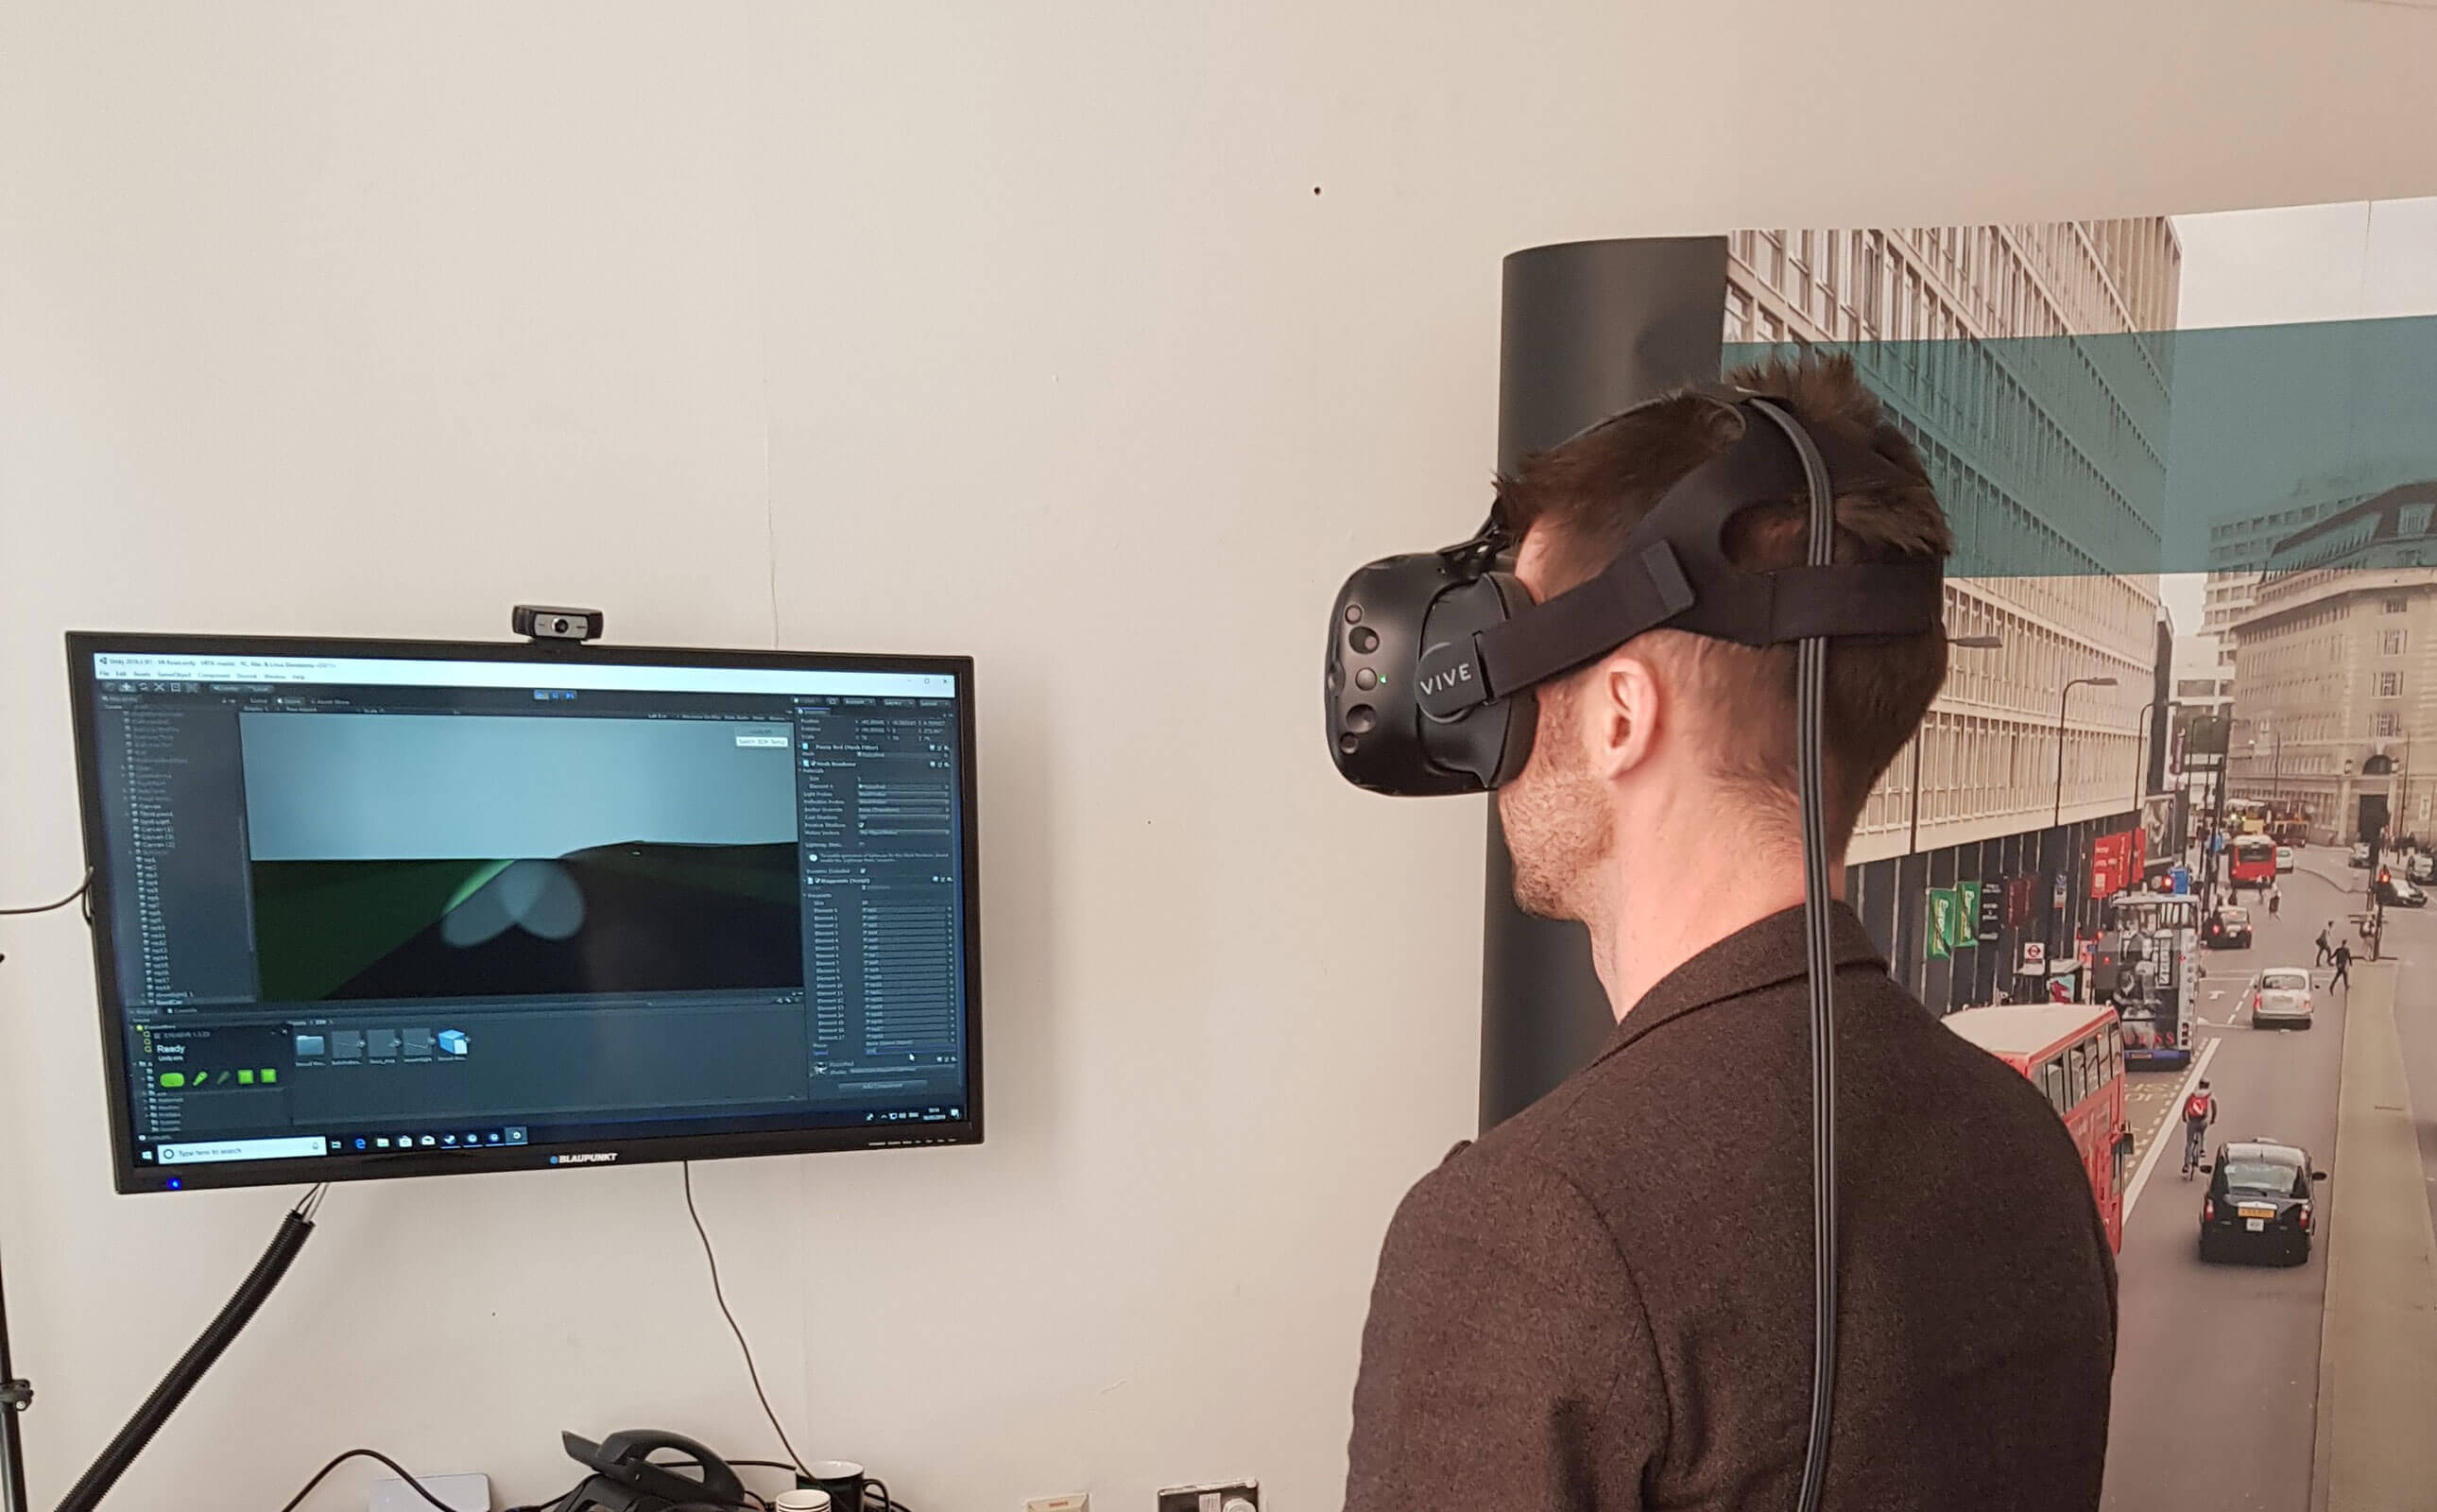 A man using the virtual reality headset and looking at a computer